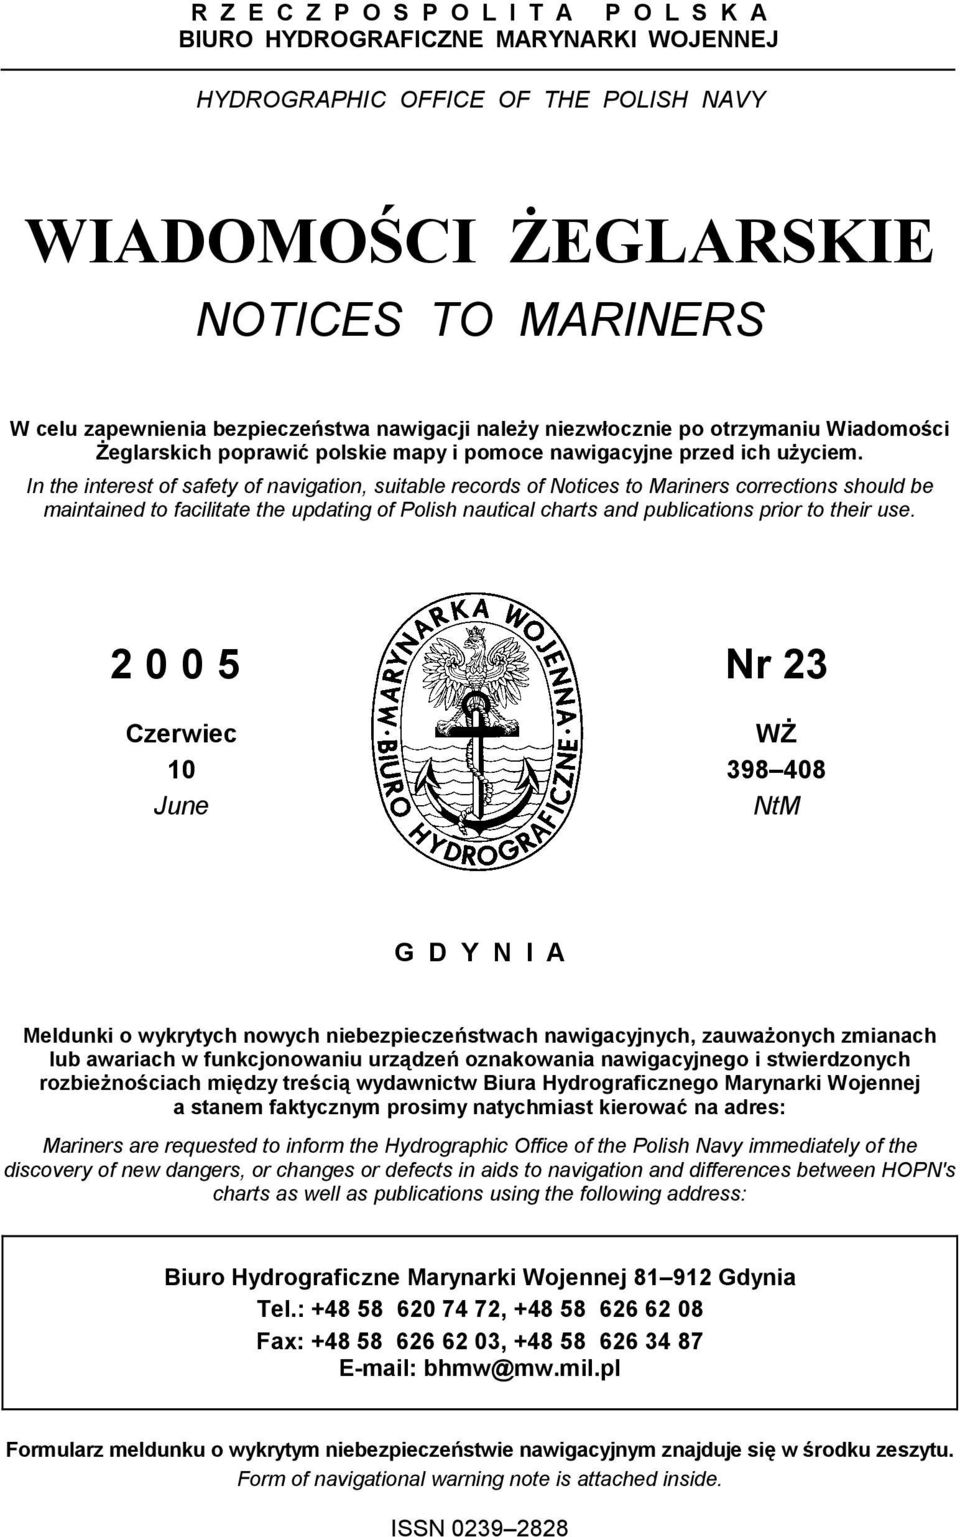 In the interest of safety of navigation, suitable records of Notices to Mariners corrections should be maintained to facilitate the updating of Polish nautical charts and publications prior to their